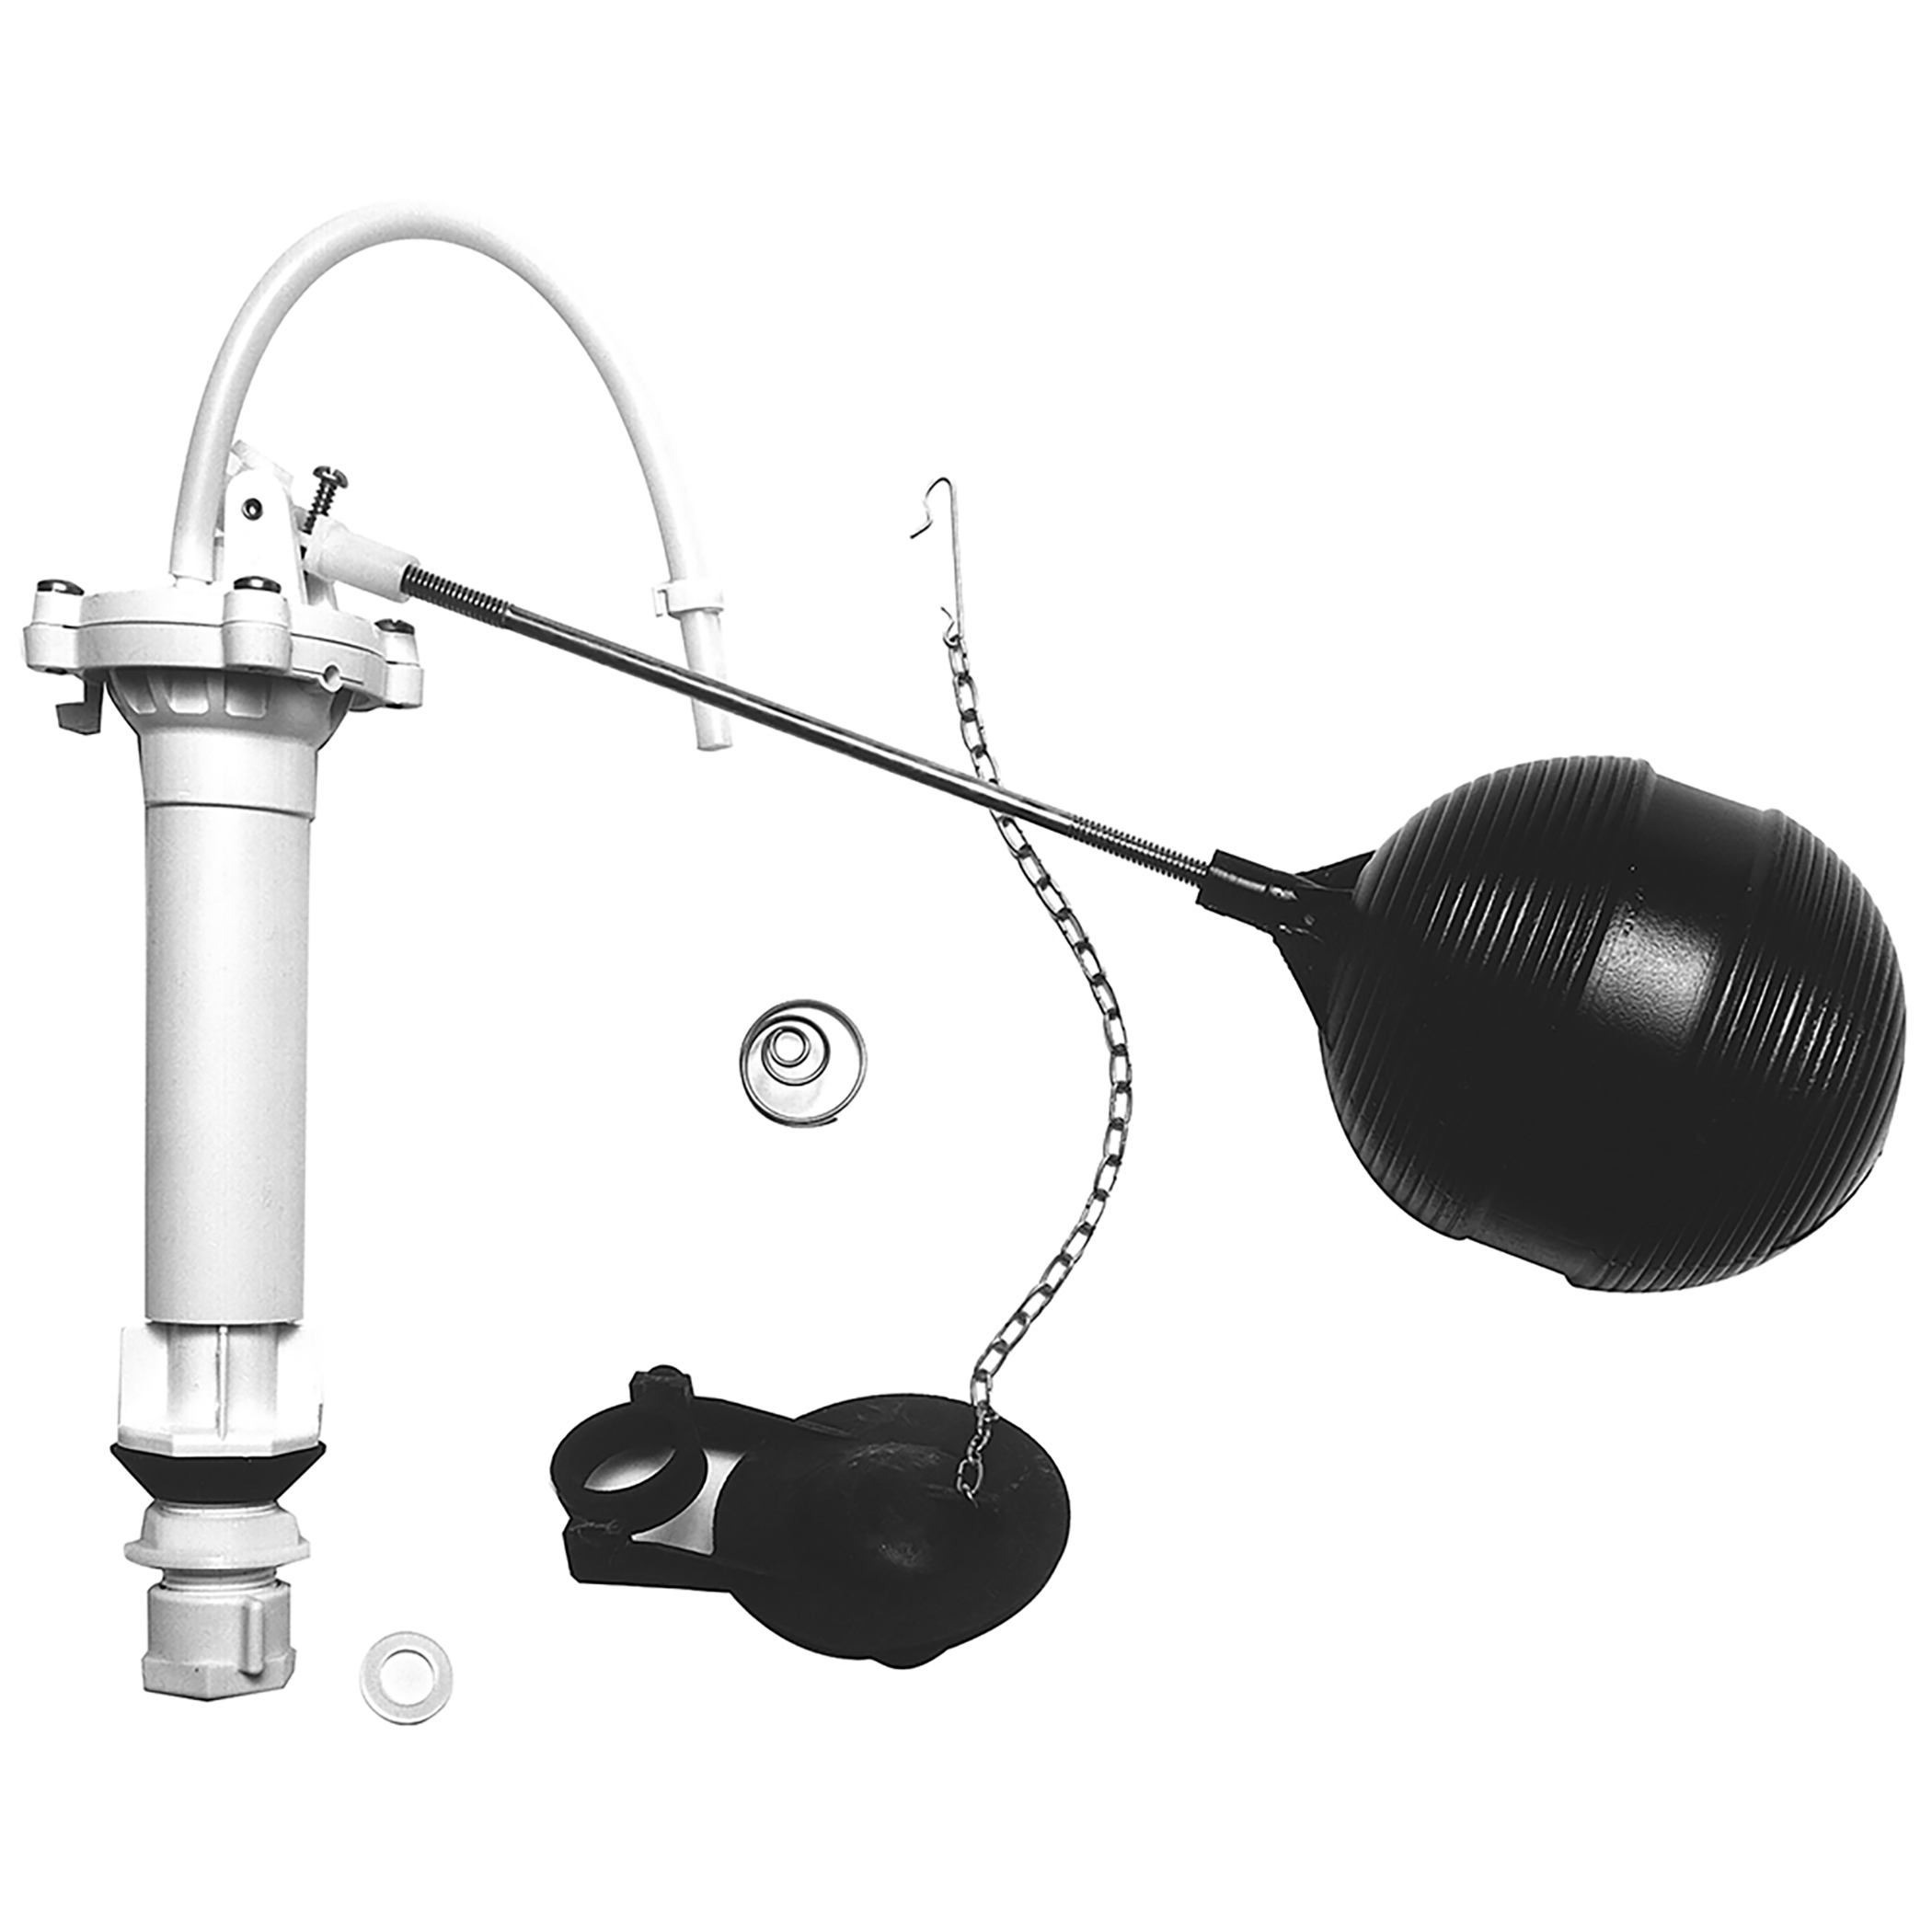 DANCO Complete Toilet Repair Kit, Fill Valve, Flapper, Rod, Float Replacement (80816)